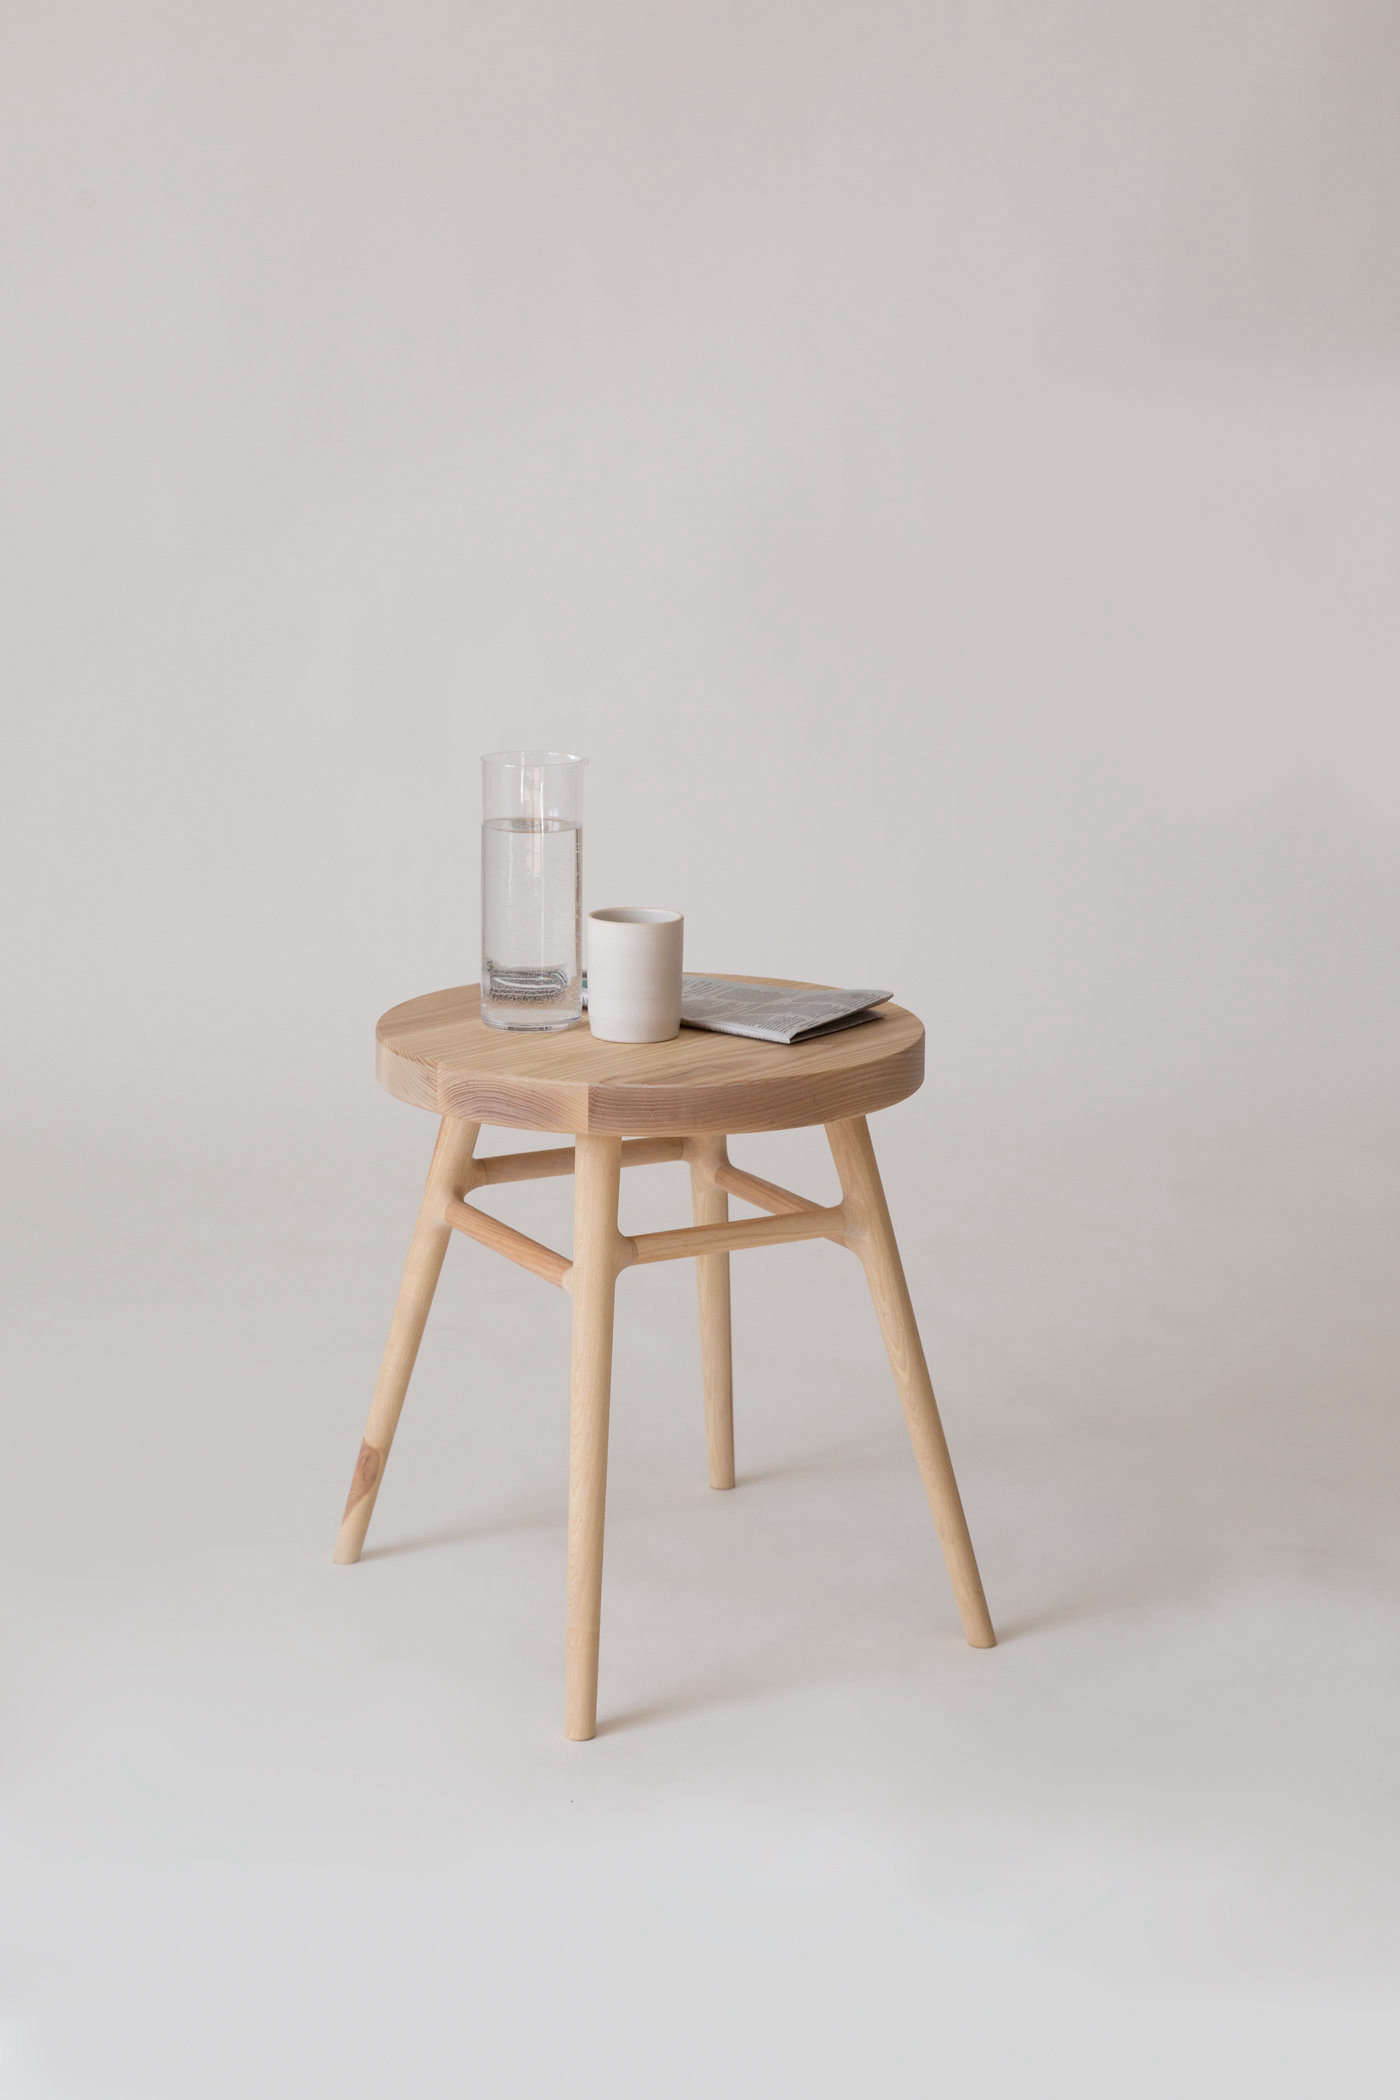 The Bough Stool makes for a sleek end seat or side table. It&#8